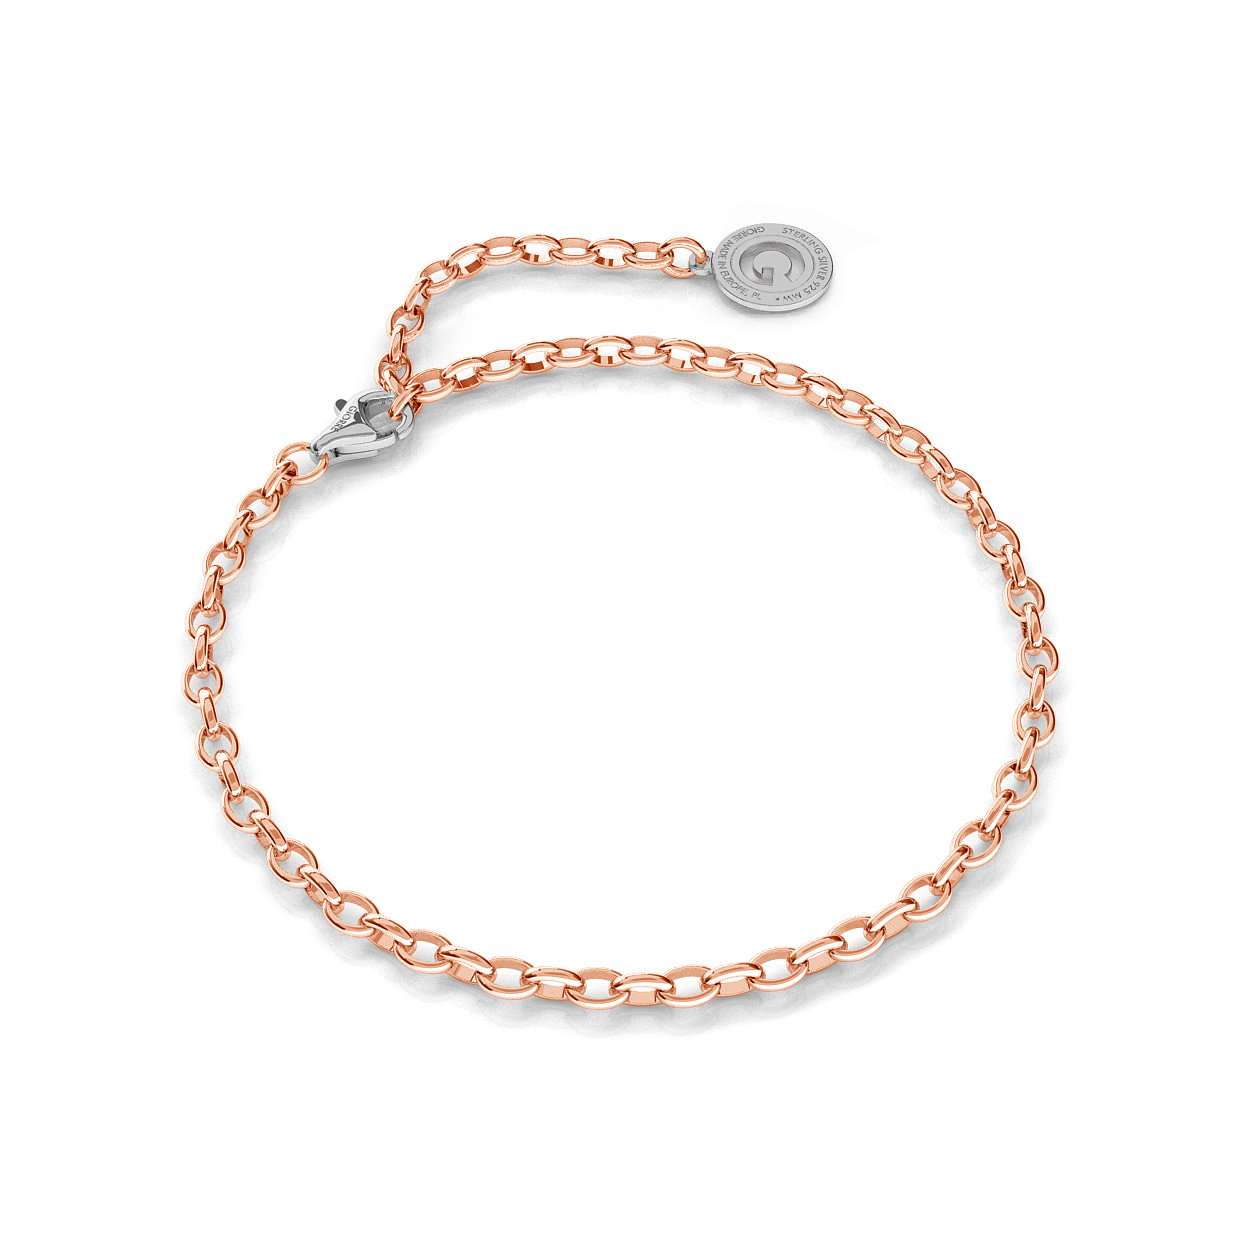 Sterling silver bracelet 16-24 cm pink gold, light rhodium clasp, link 4x3 mm